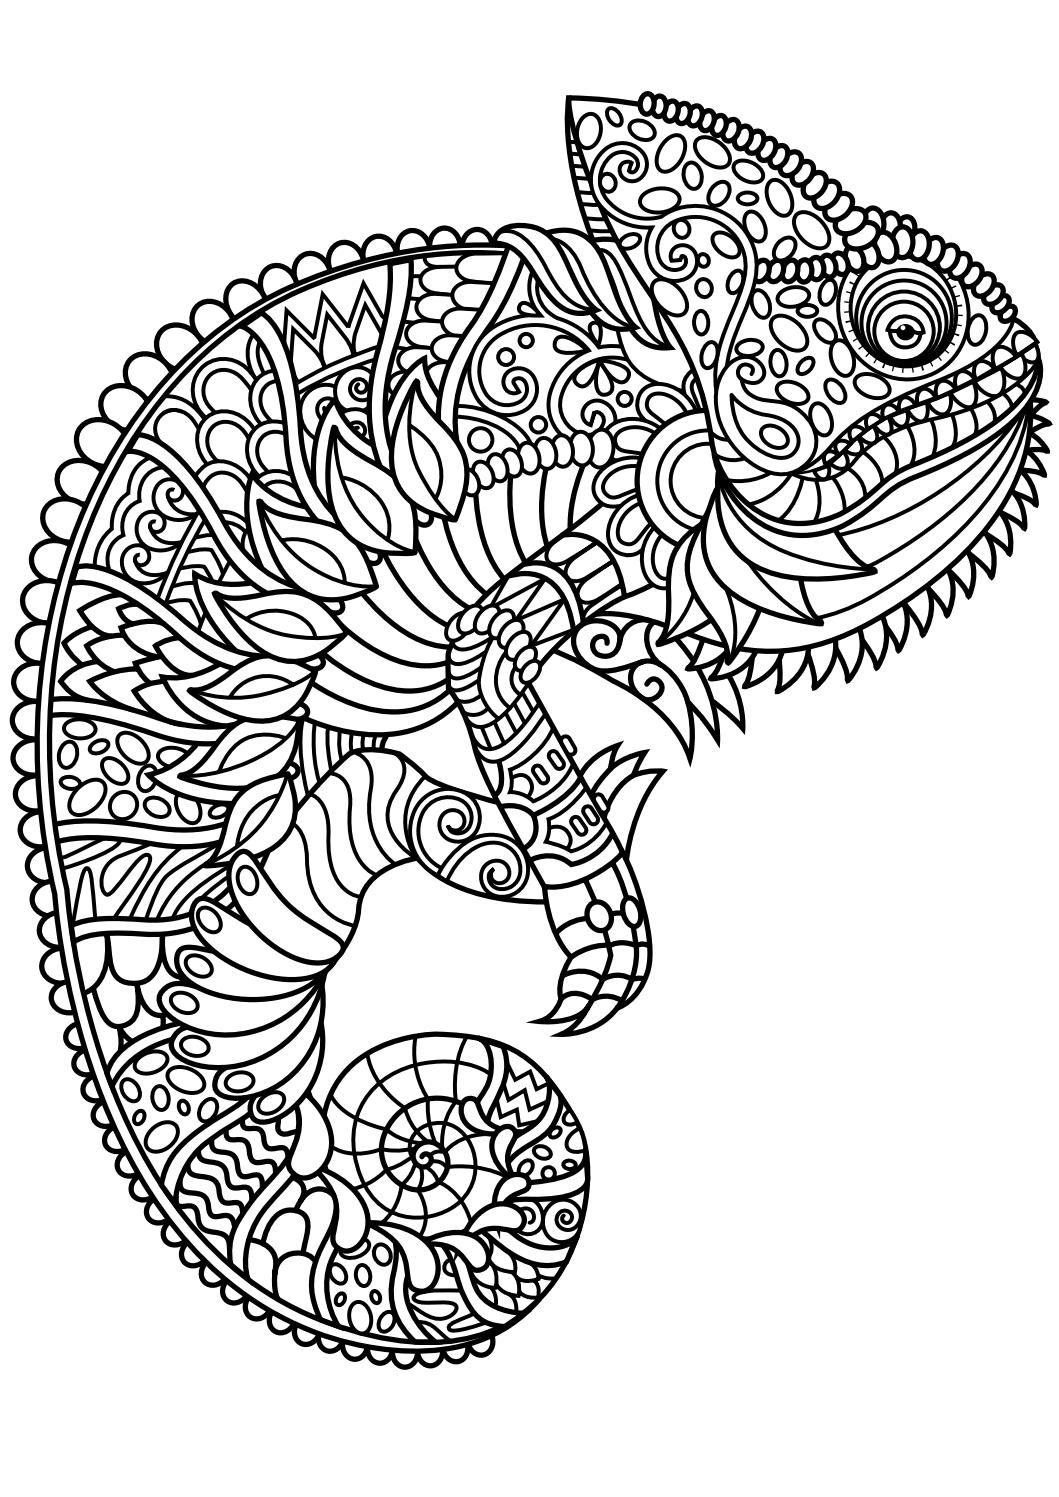 Pdf Coloring Pages Free Coloring Pages Download | Xsibe skulls ...